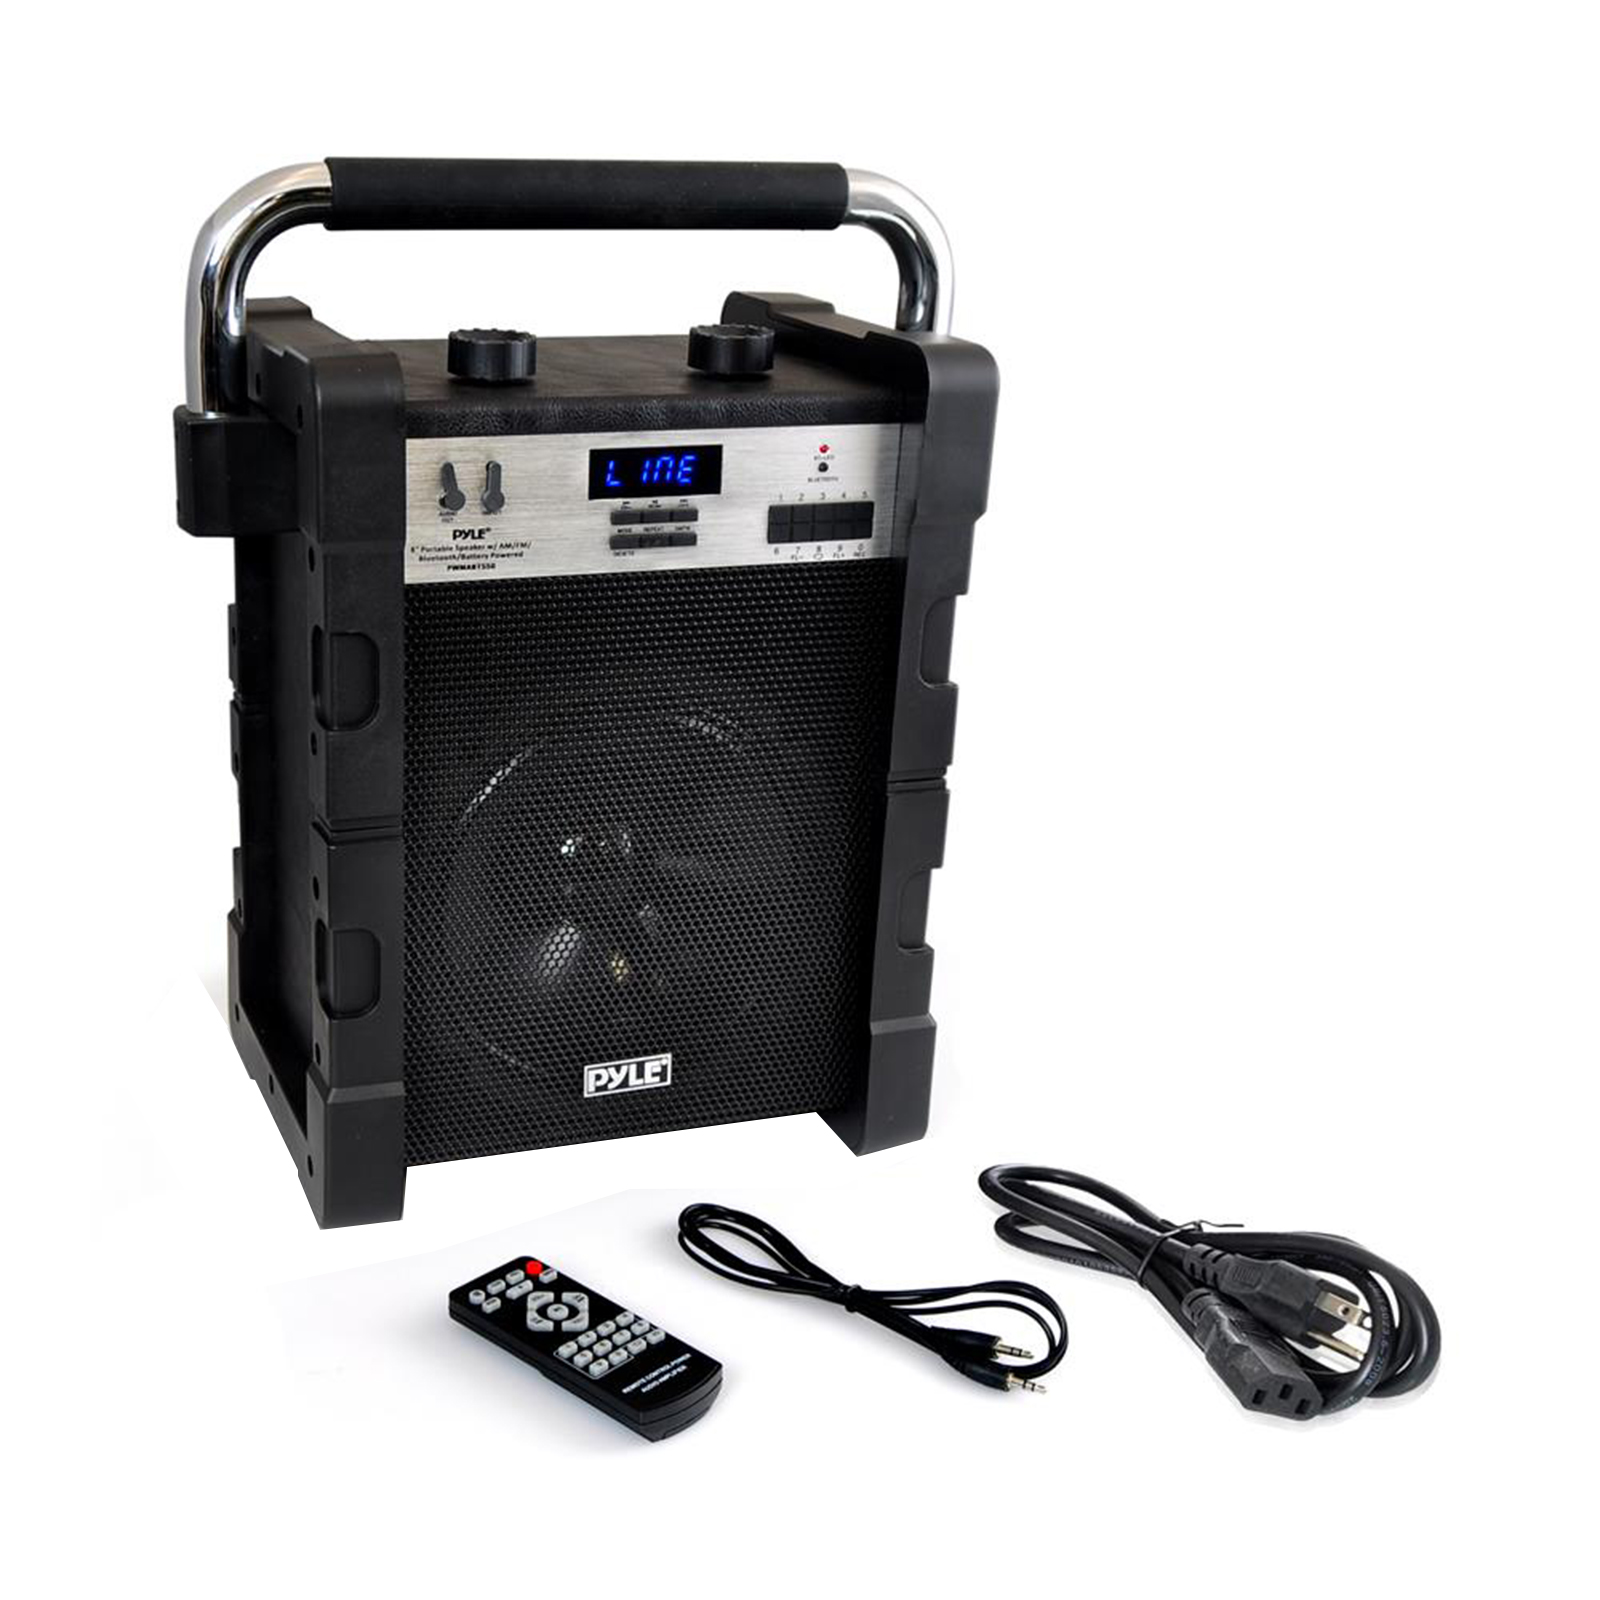 BT Rugged and  Portable Speaker System, Work / Job Site Stereo, Built-in Battery, MP3/USB/SD, AM/FM Radio (Black)